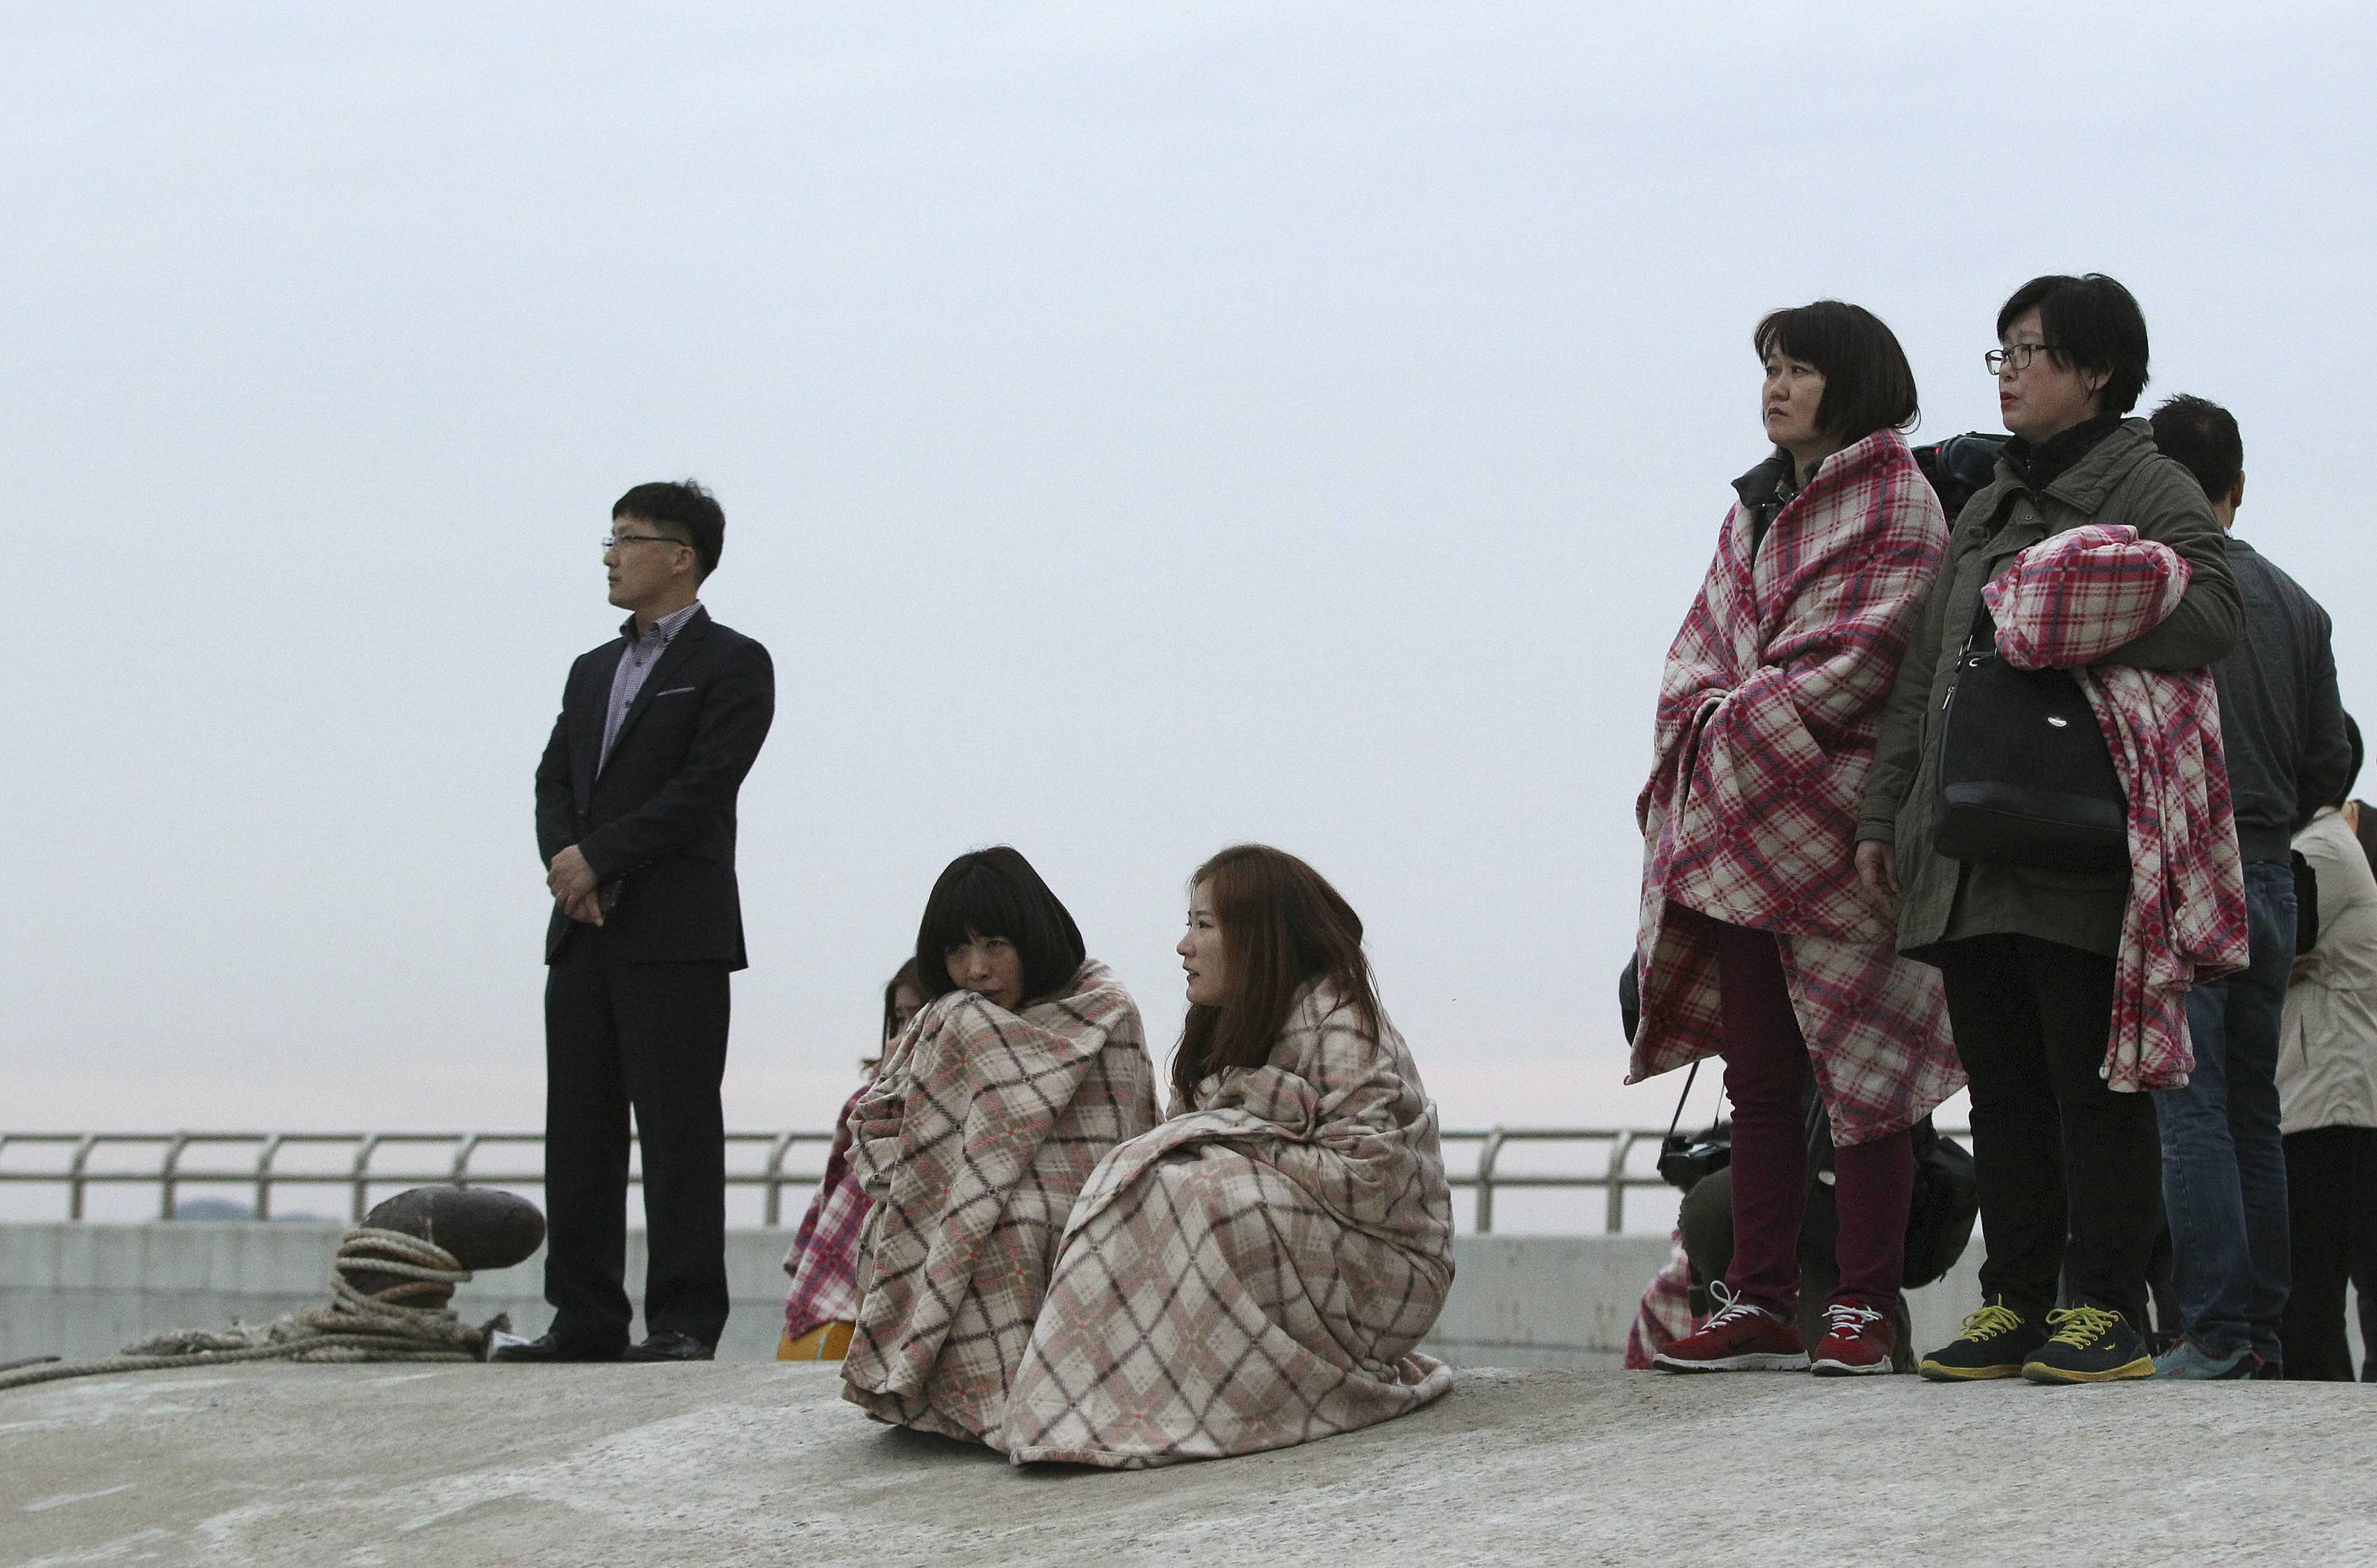 Relatives wait for their missing loved ones at a port in Jindo, South Korea, Wednesday, April 16, 2014. A ferry carrying 459 people, mostly high school students on an overnight trip to a tourist island, sank off South Korea's southern coast on Wednesday, leaving nearly 300 people missing despite a frantic, hourslong rescue by dozens of ships and helicopters.